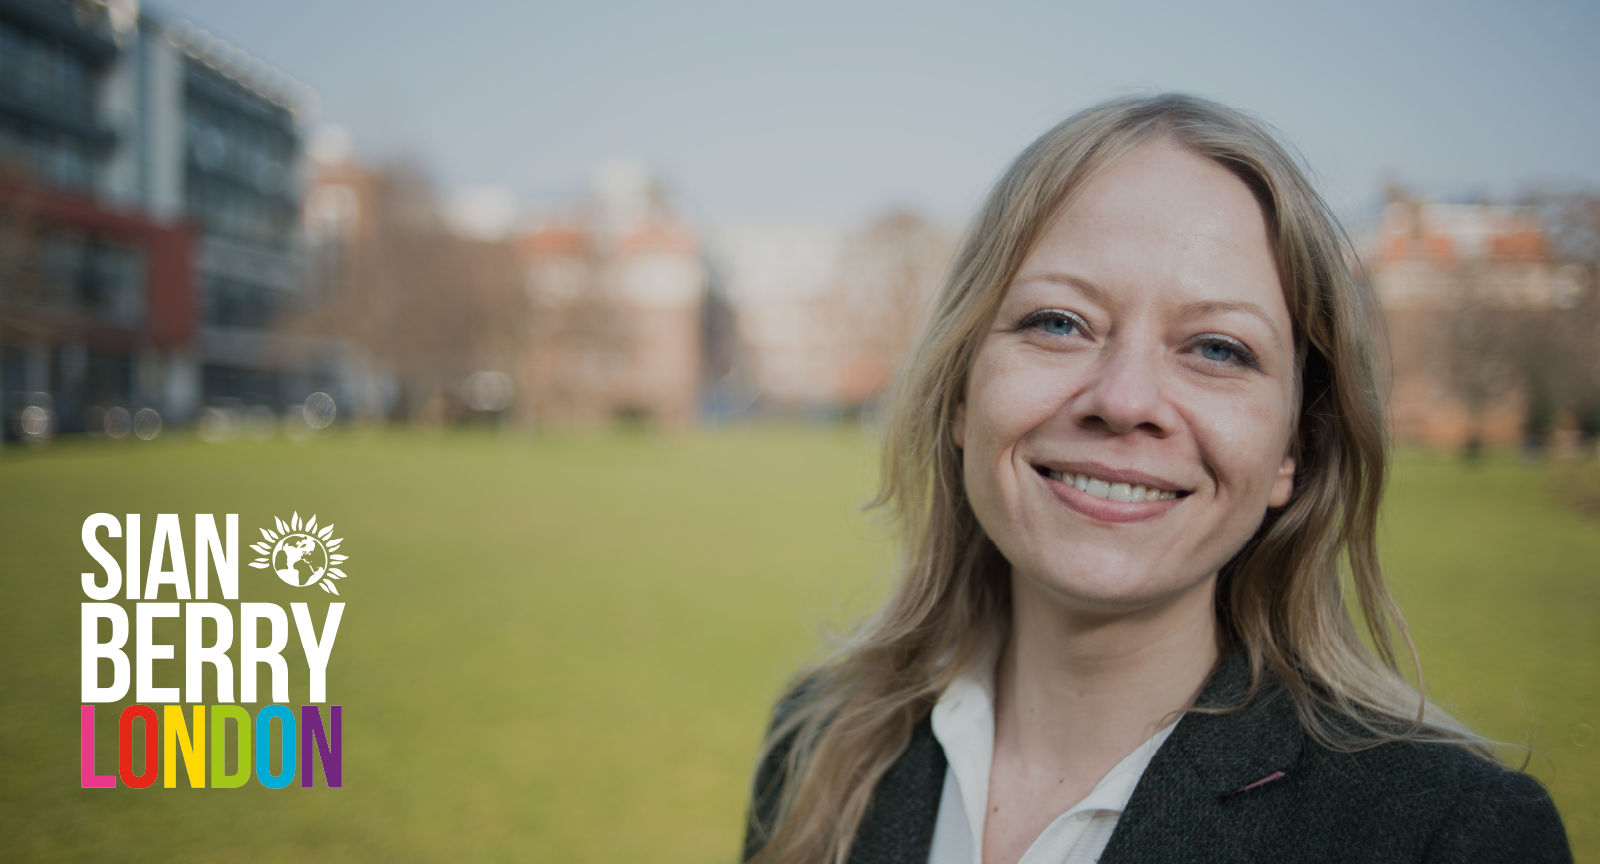 Sian Berry London - in a park with housing